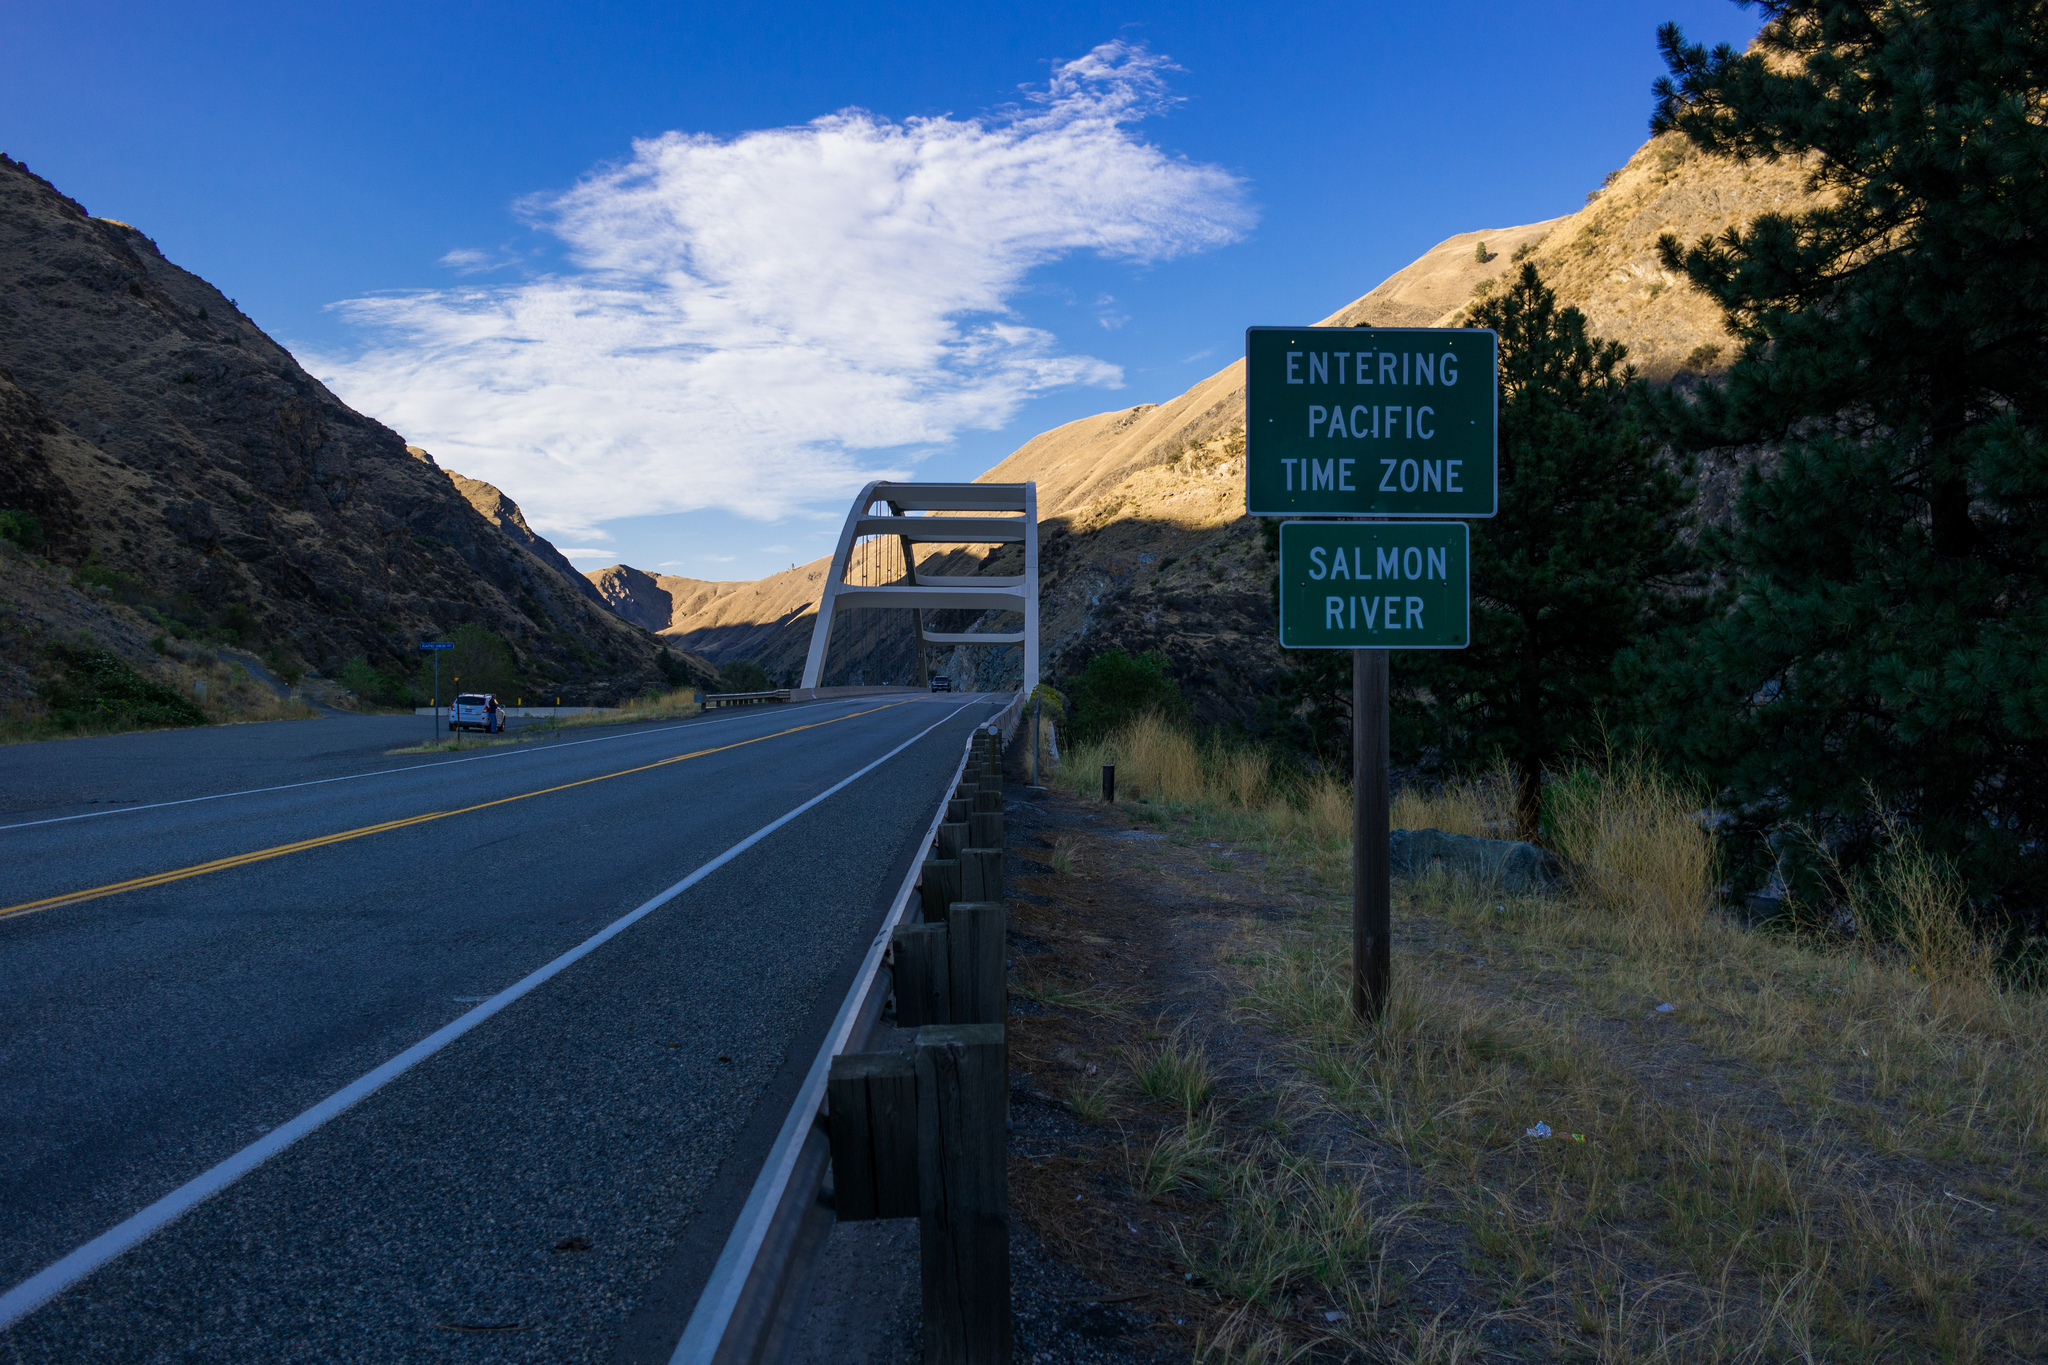 San Diego To San Francisco Drive Time >> Drive In Two Time Zones At Once On This Bridge In Idaho